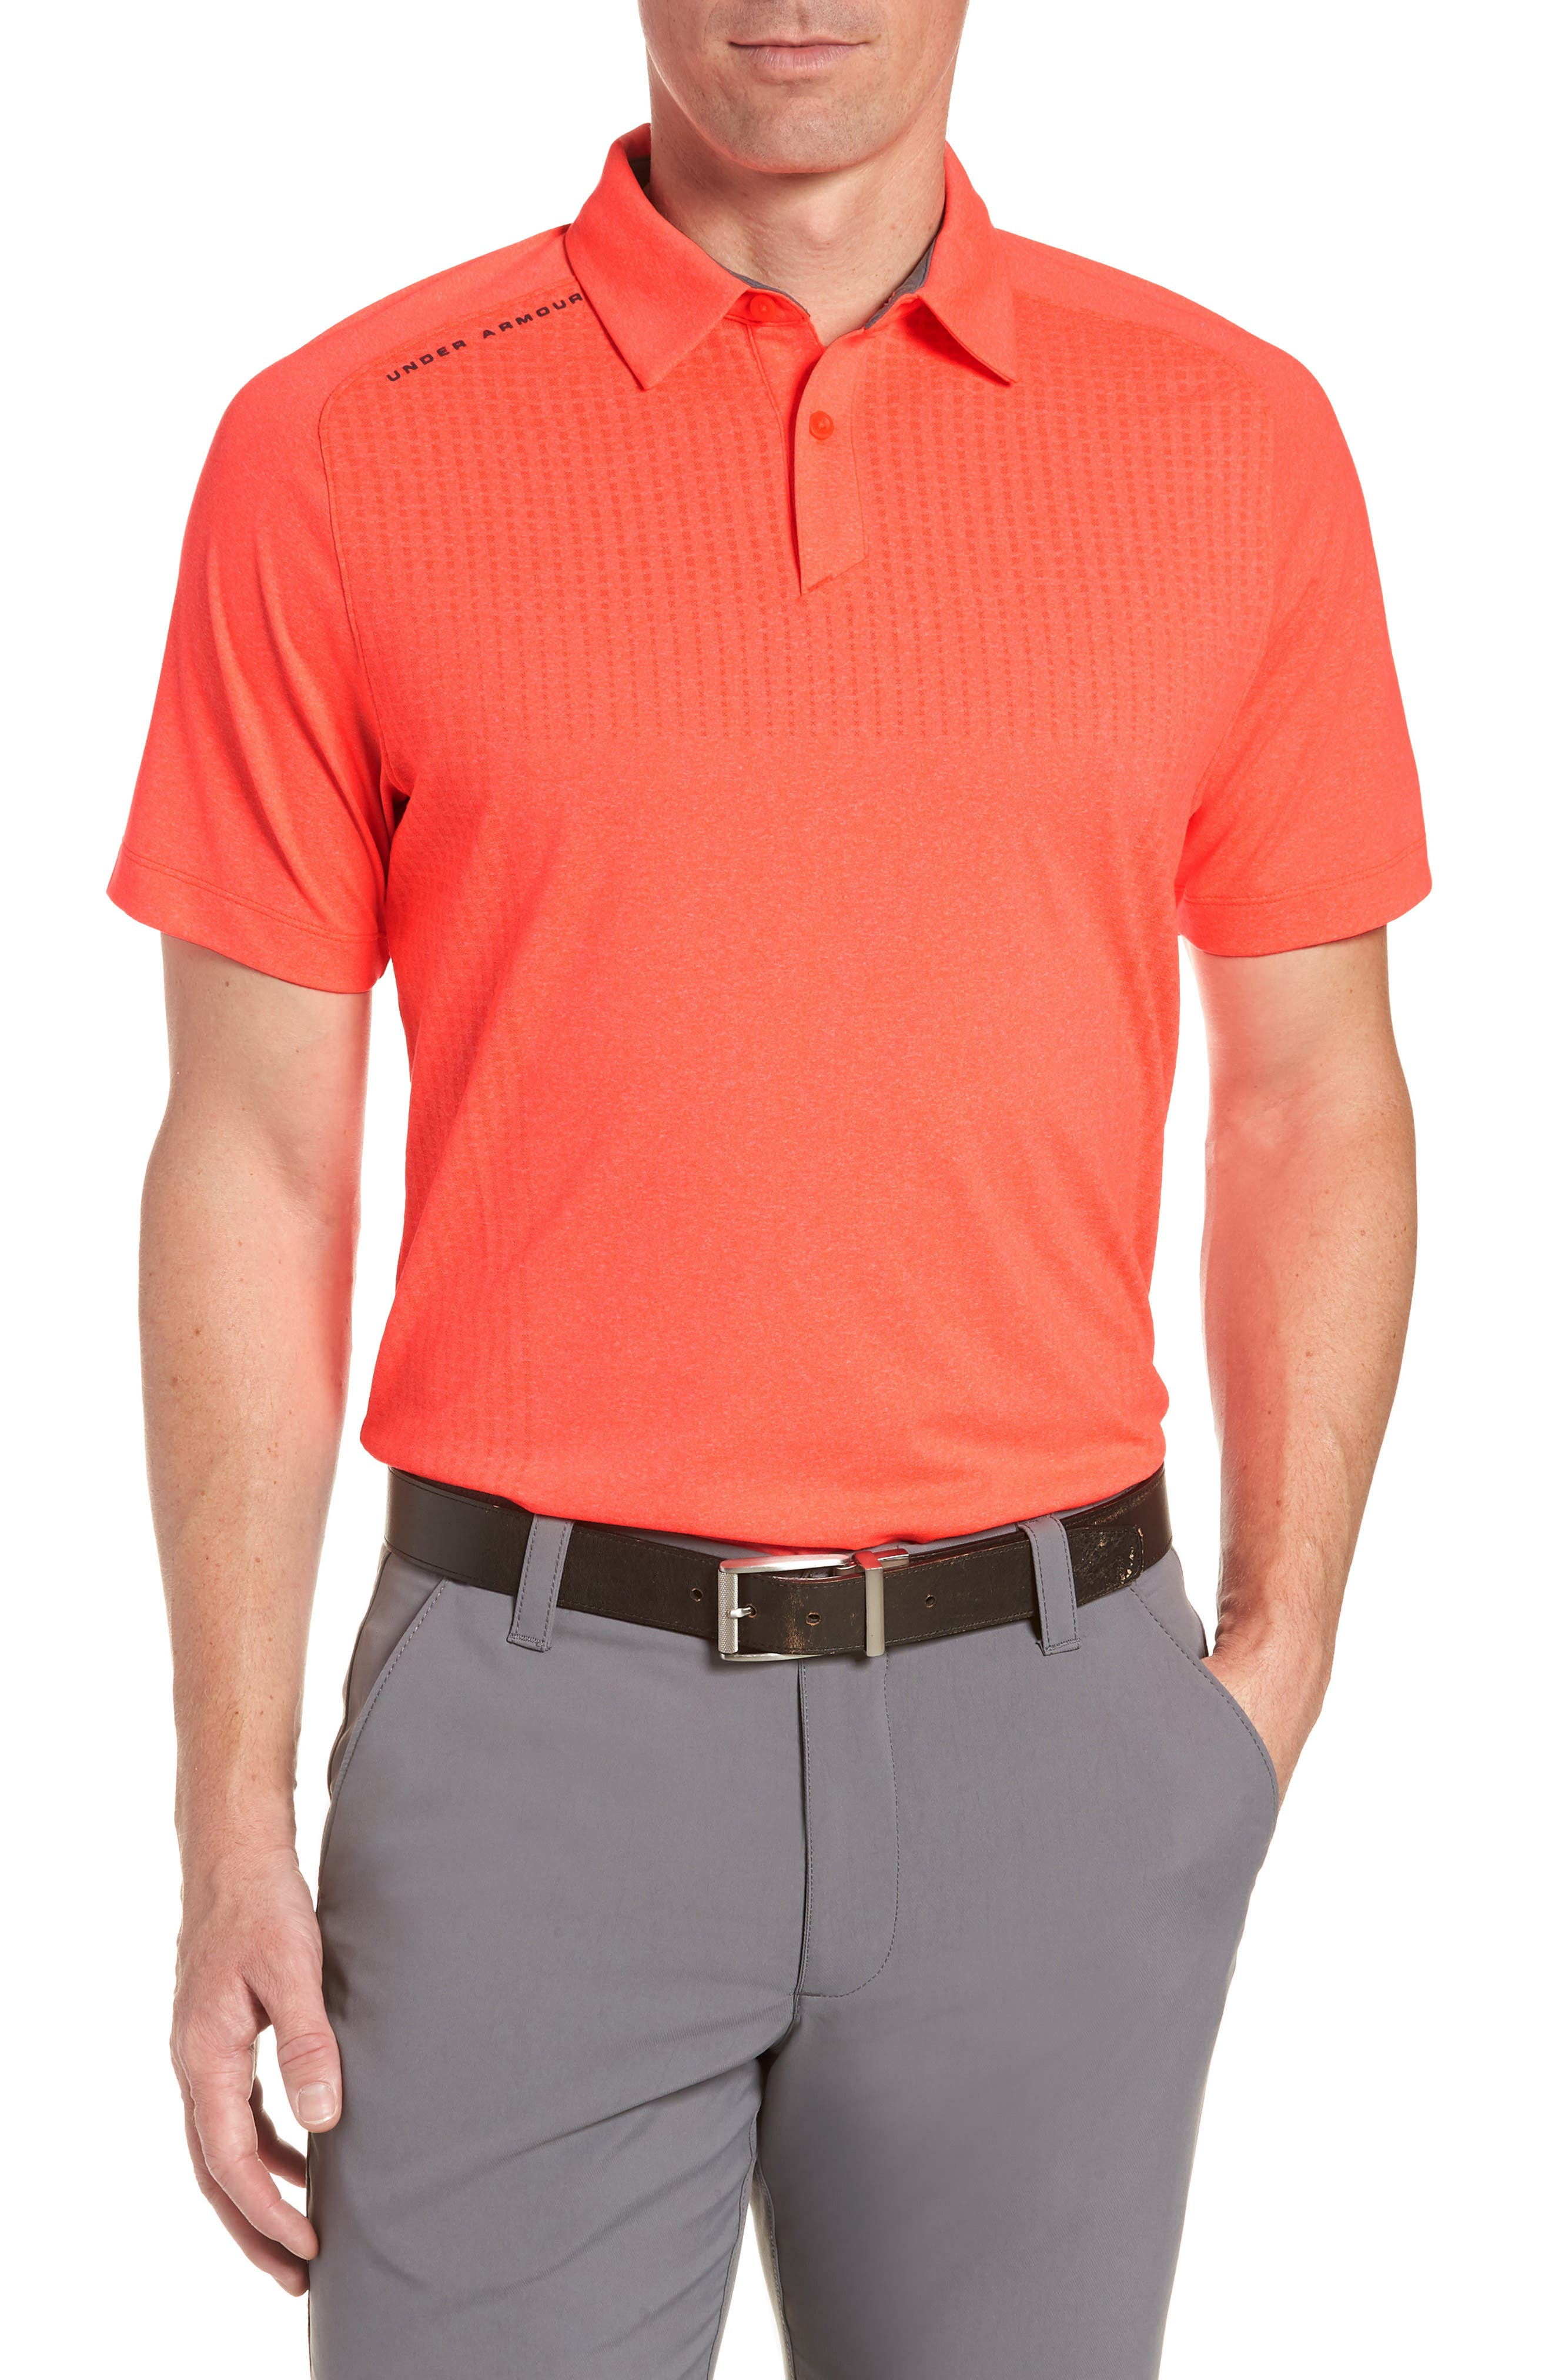 Threadborne Outer Glow Regular Fit Polo Shirt,                             Main thumbnail 1, color,                             NEON CORAL LIGHT/ HEATHER